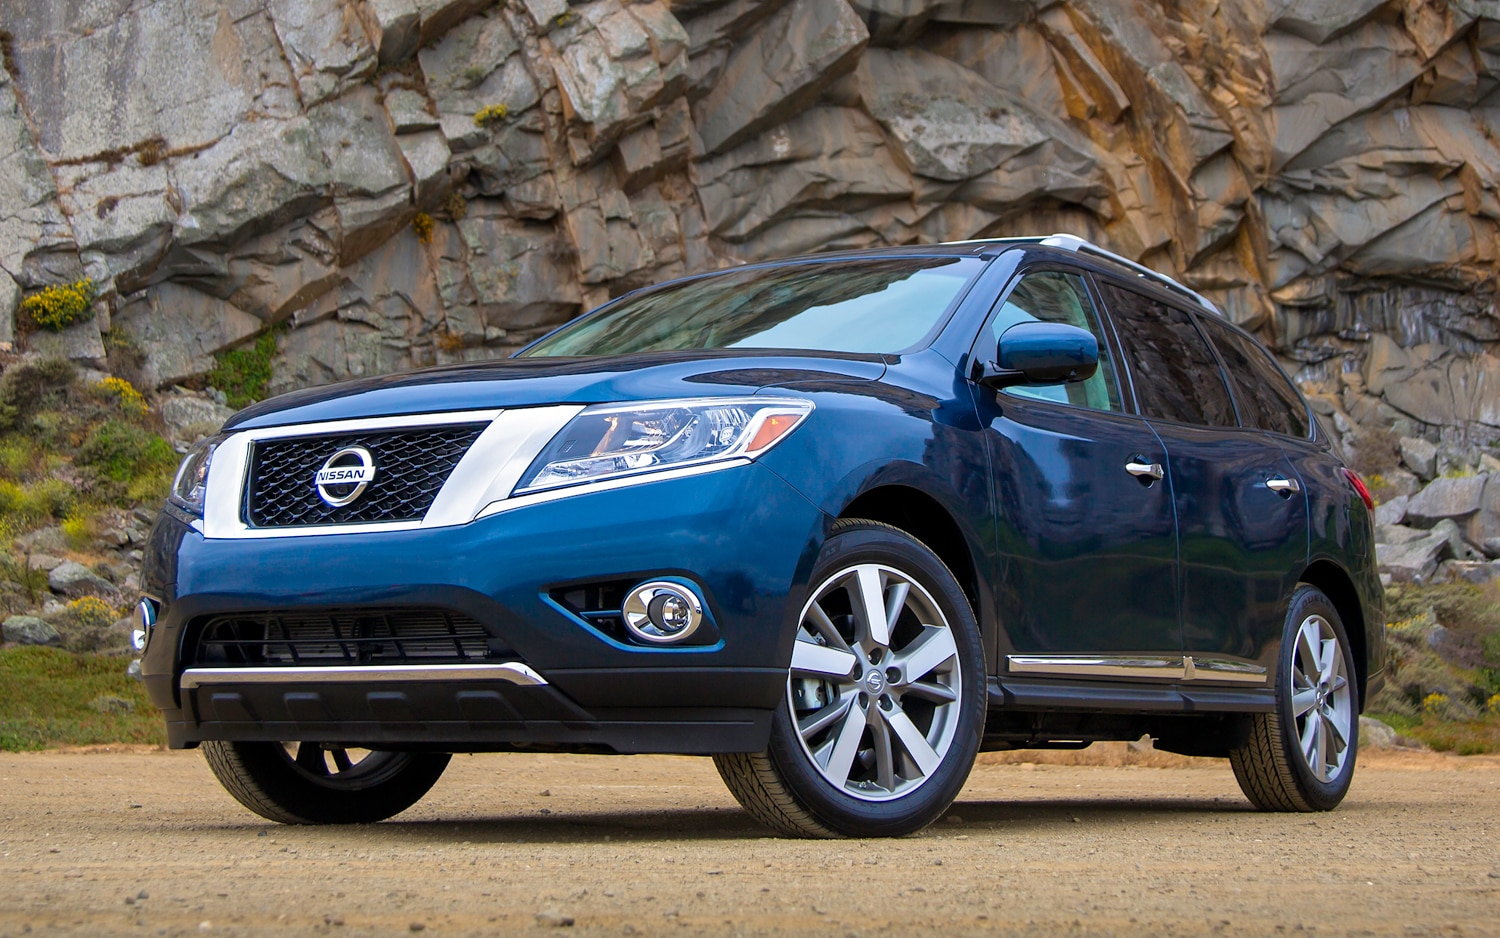 2013 Nissan Pathfinder Front Three Quarter Closeup